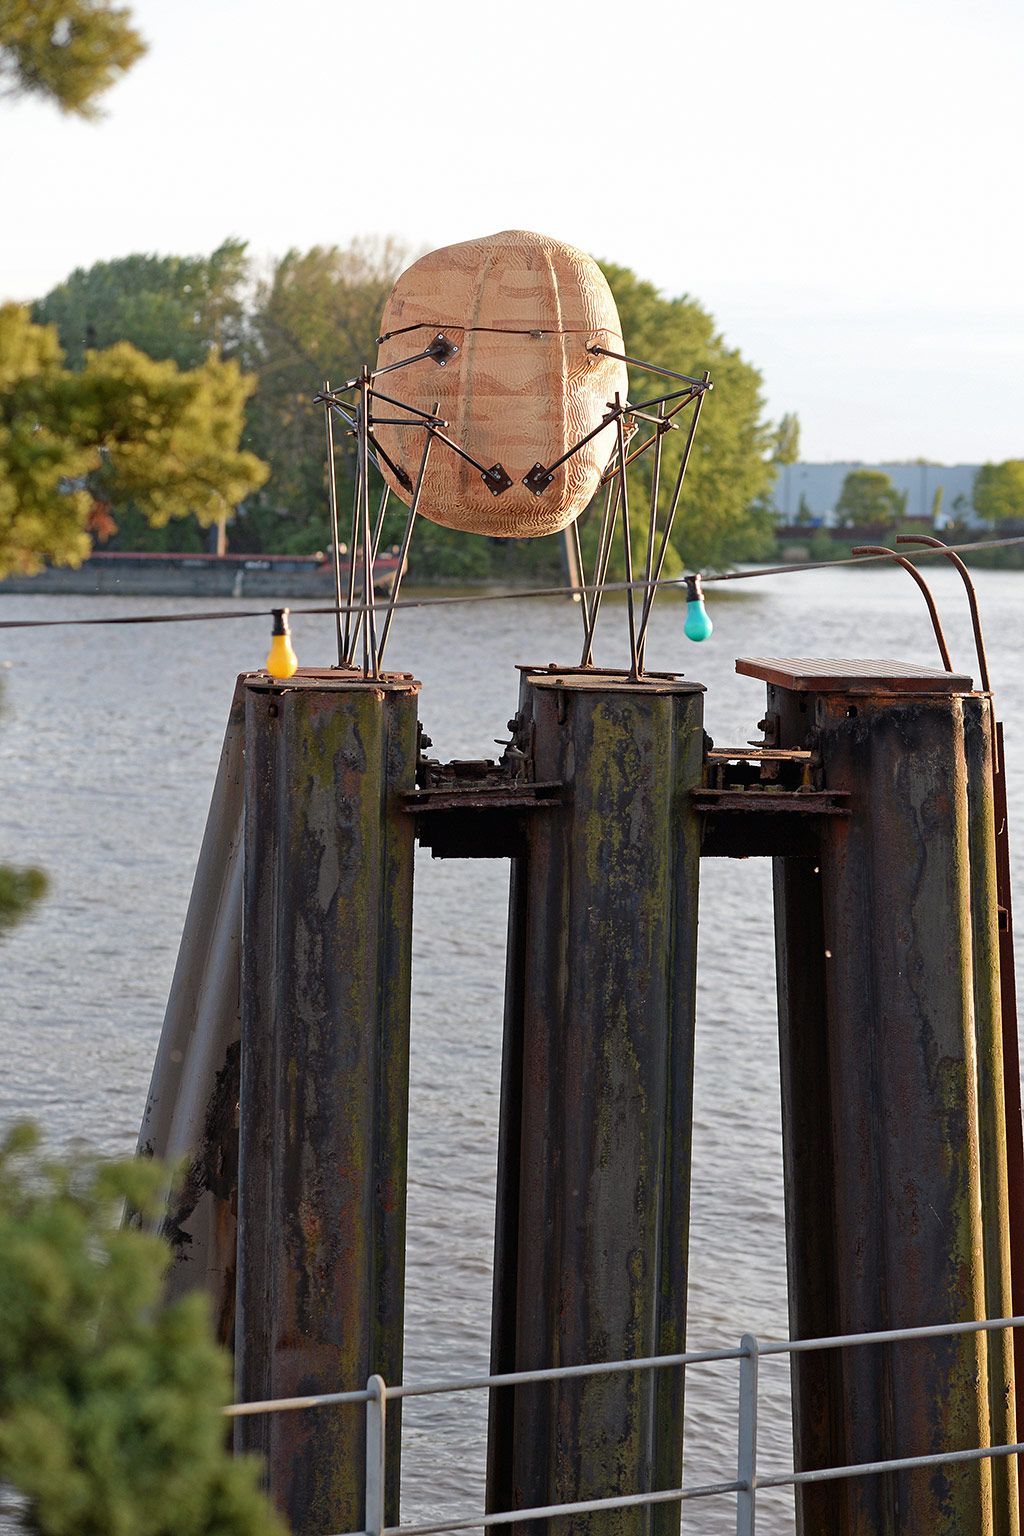 Beehive on pile moorings in Entenwerder © Felix Amsel